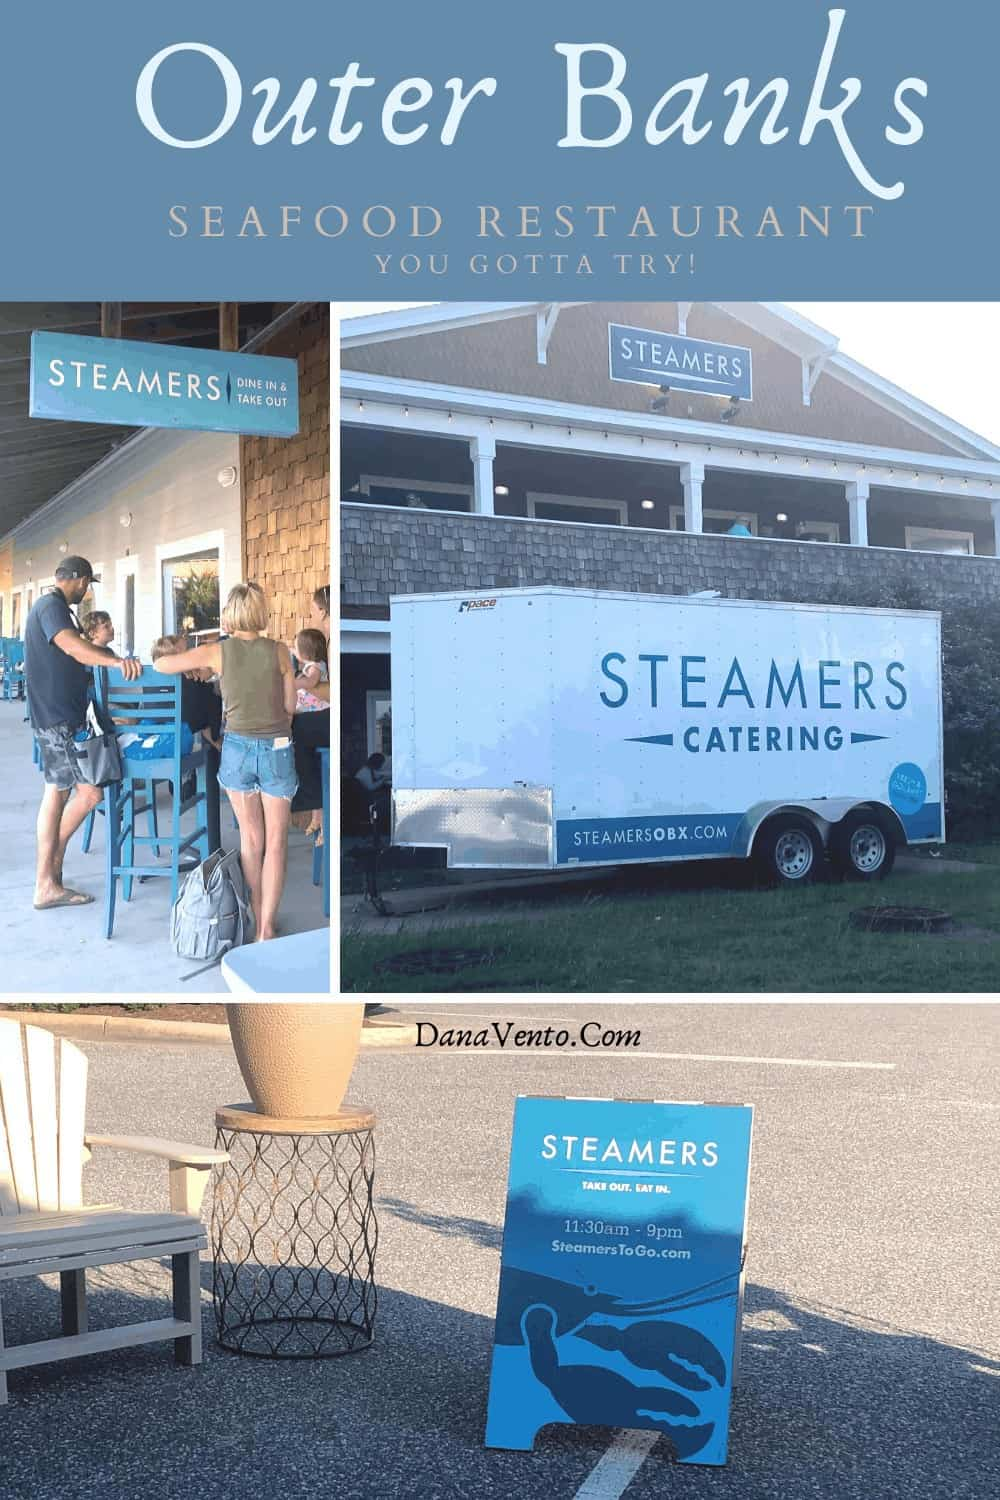 Steamers- Best Southern Shores Seafood Restaurant in the Outer Banks